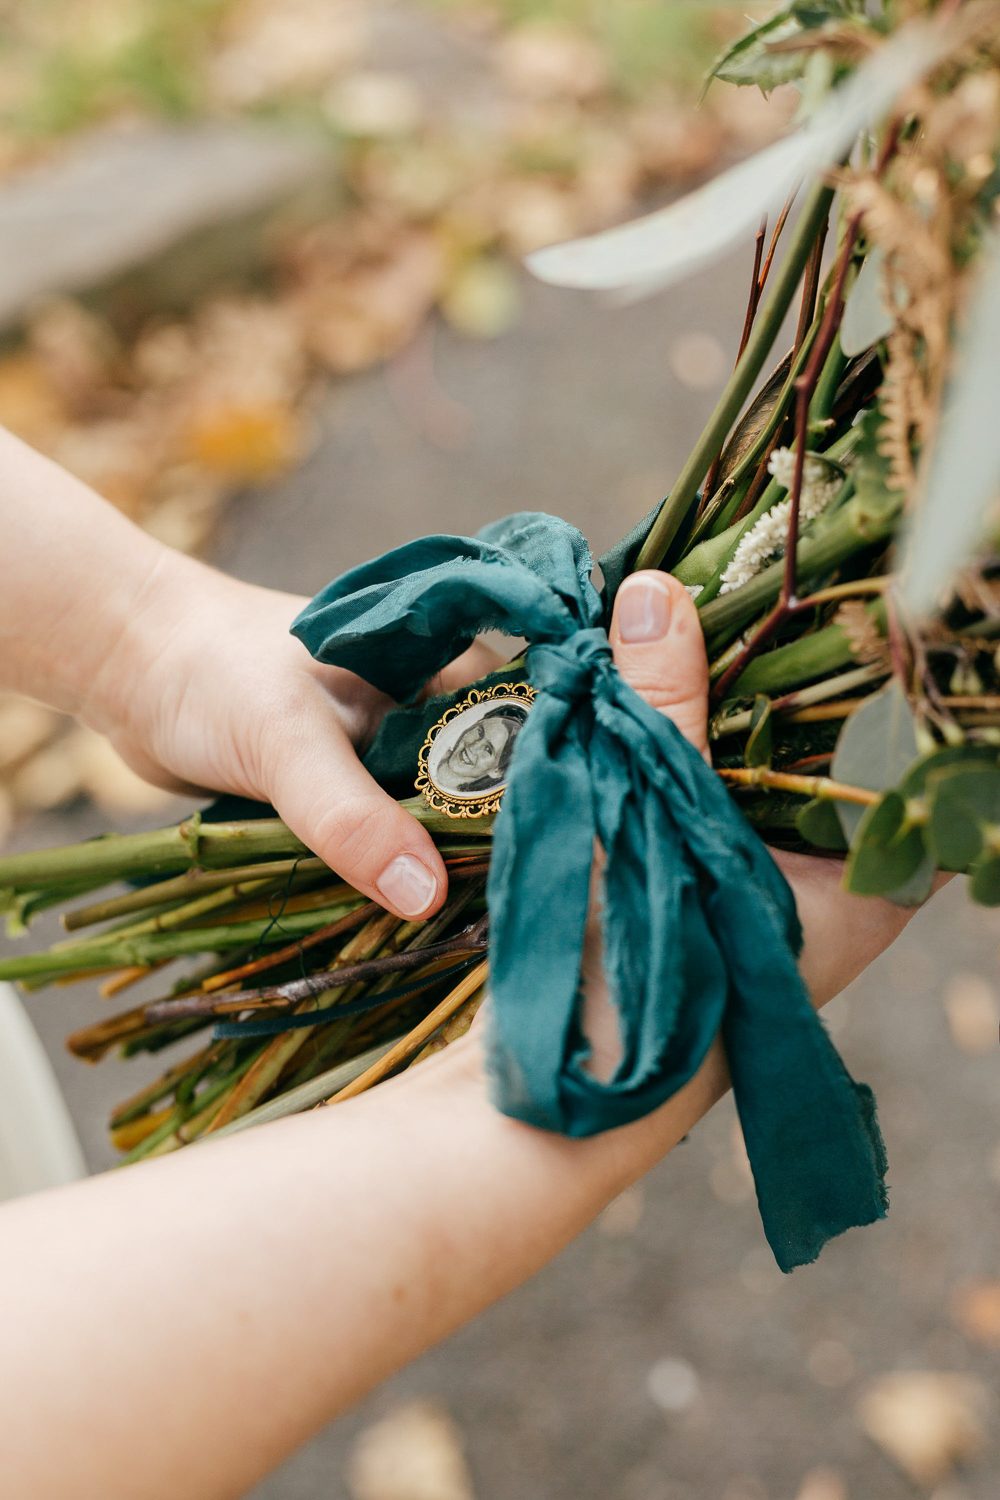 A close up of wedding day details, a broach in the brides bouquet